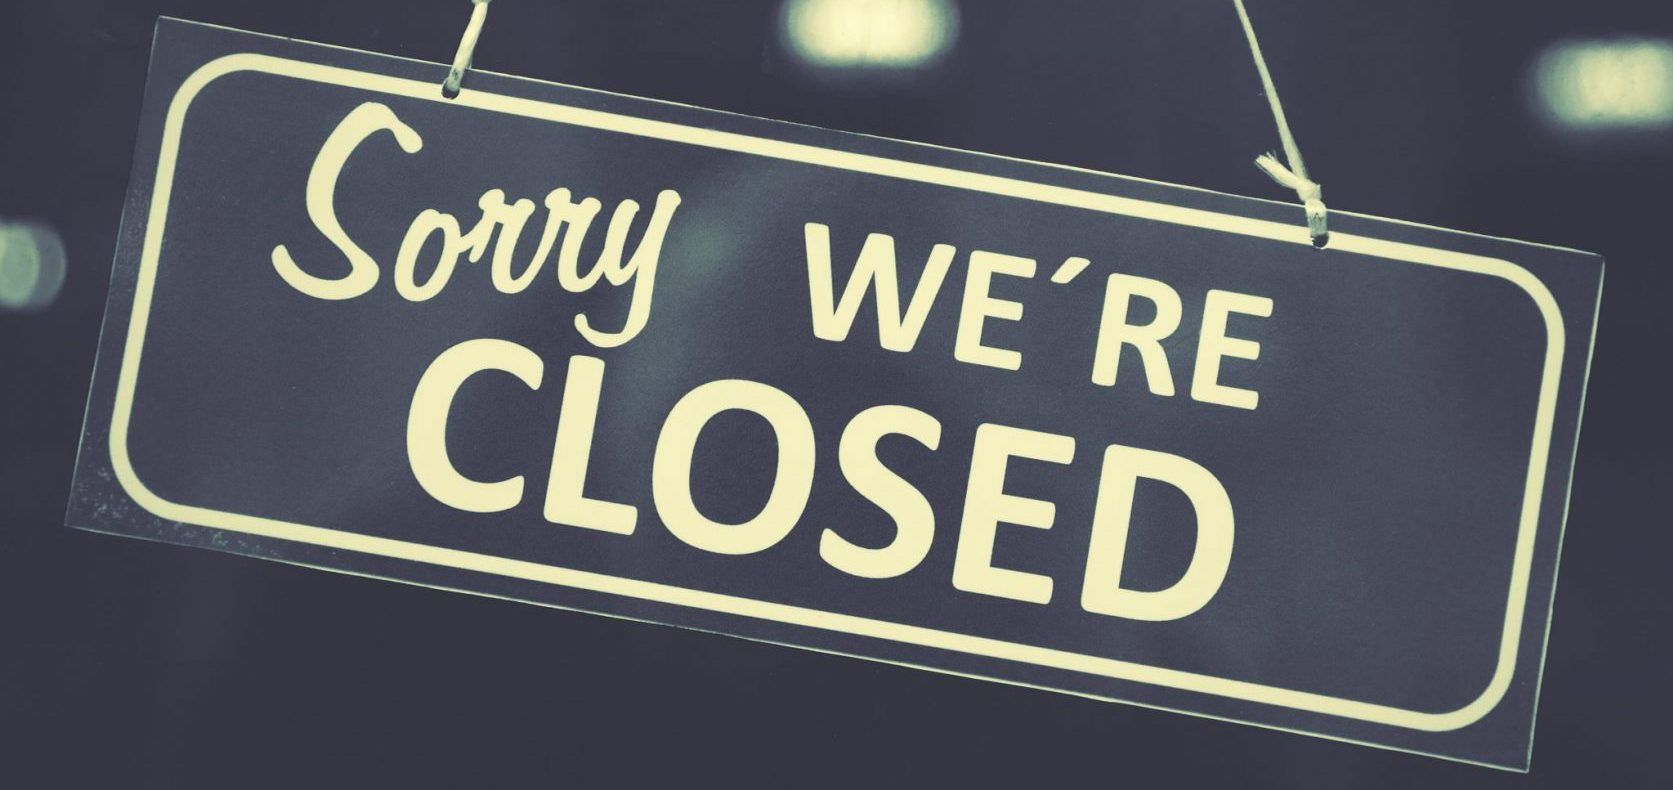 Sorry we're closed.